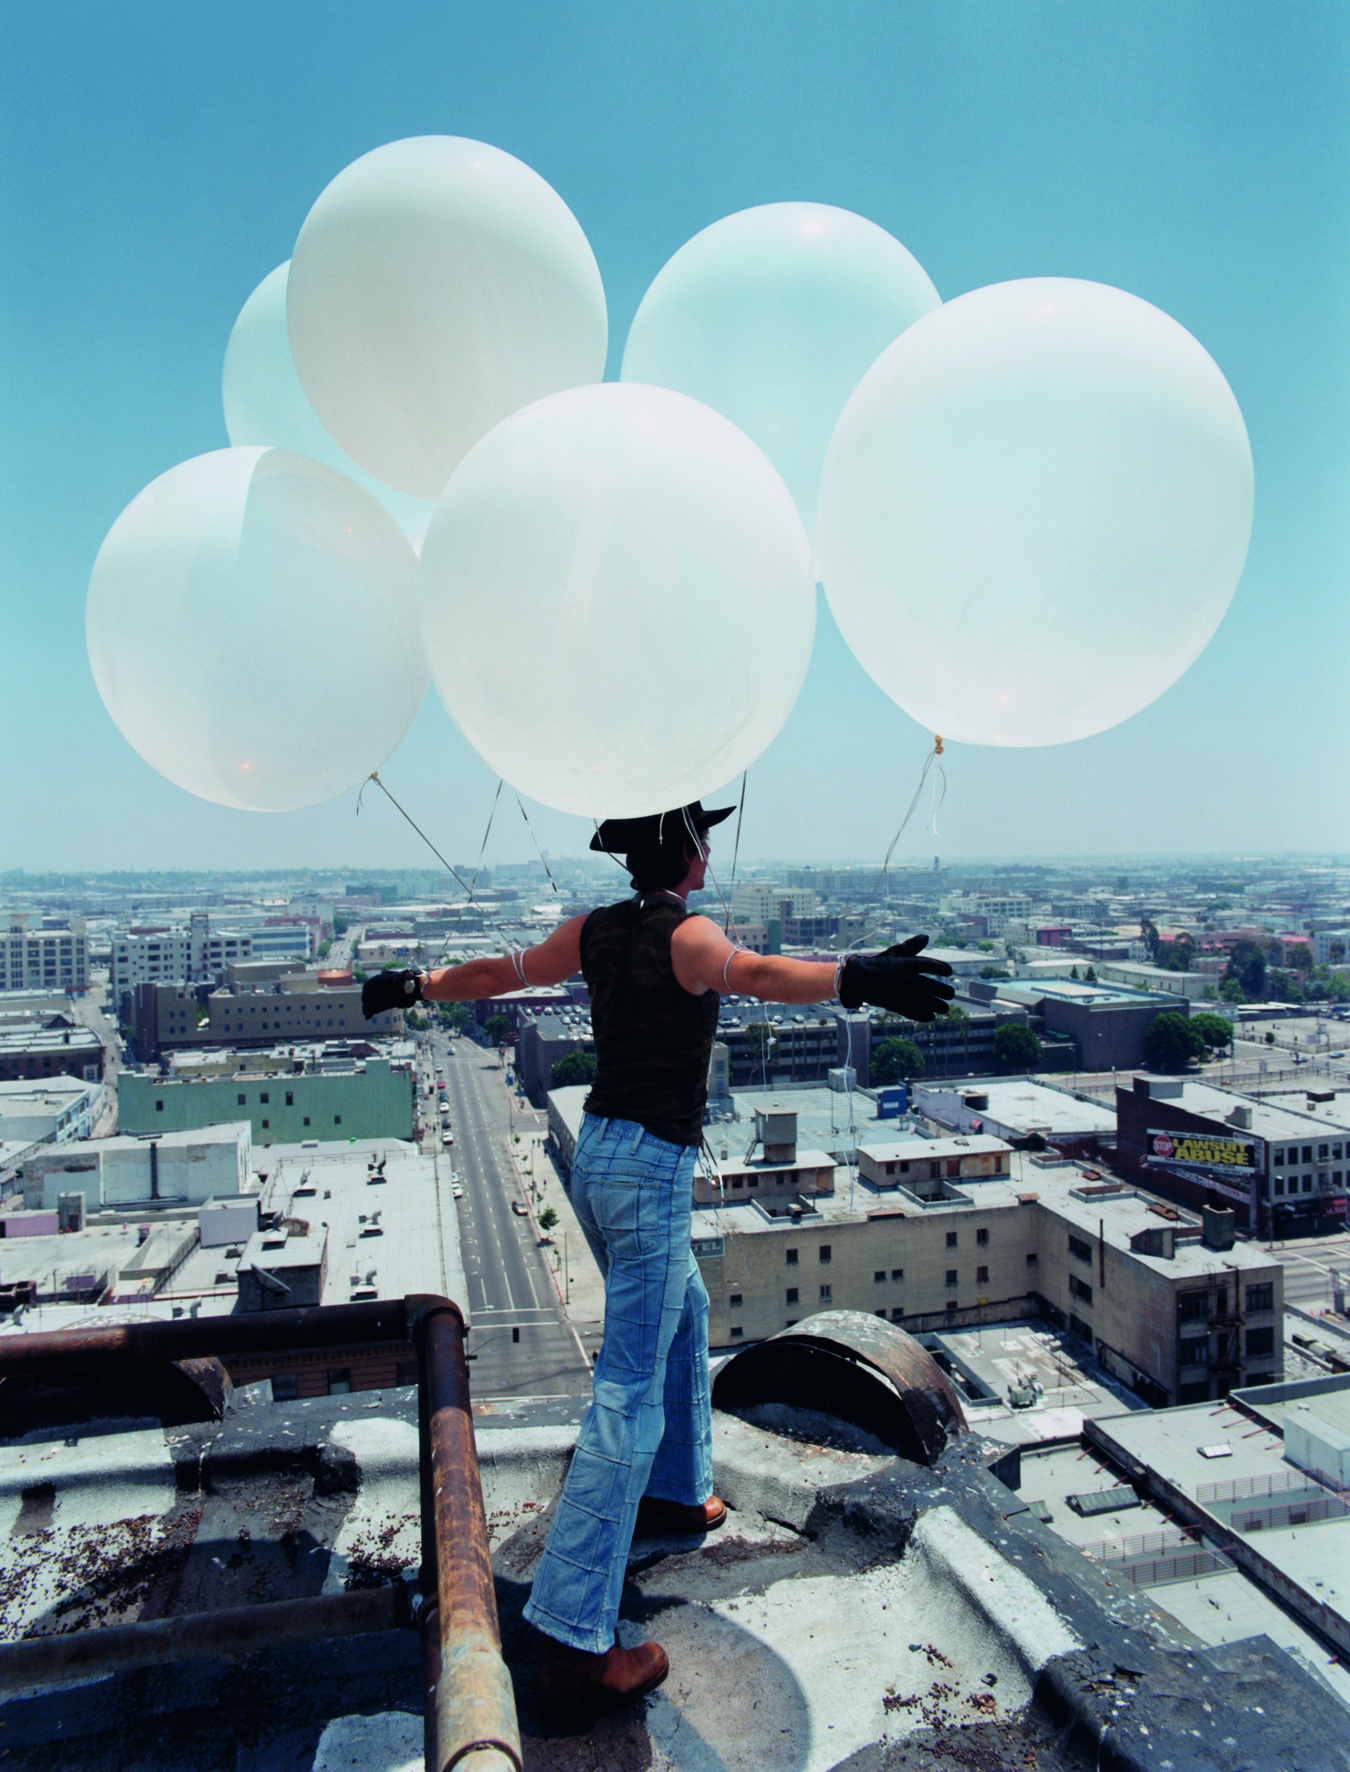 © Nothing Beats Reality by Pierre Winther, to be published by teNeues in March 2015, € 98 -   www.teneues.com  .   Trust, Balloon Boy, 1997 -   Photo © 2014 by Pierre Winther. All rights reserved.   www.pierrewinther.com